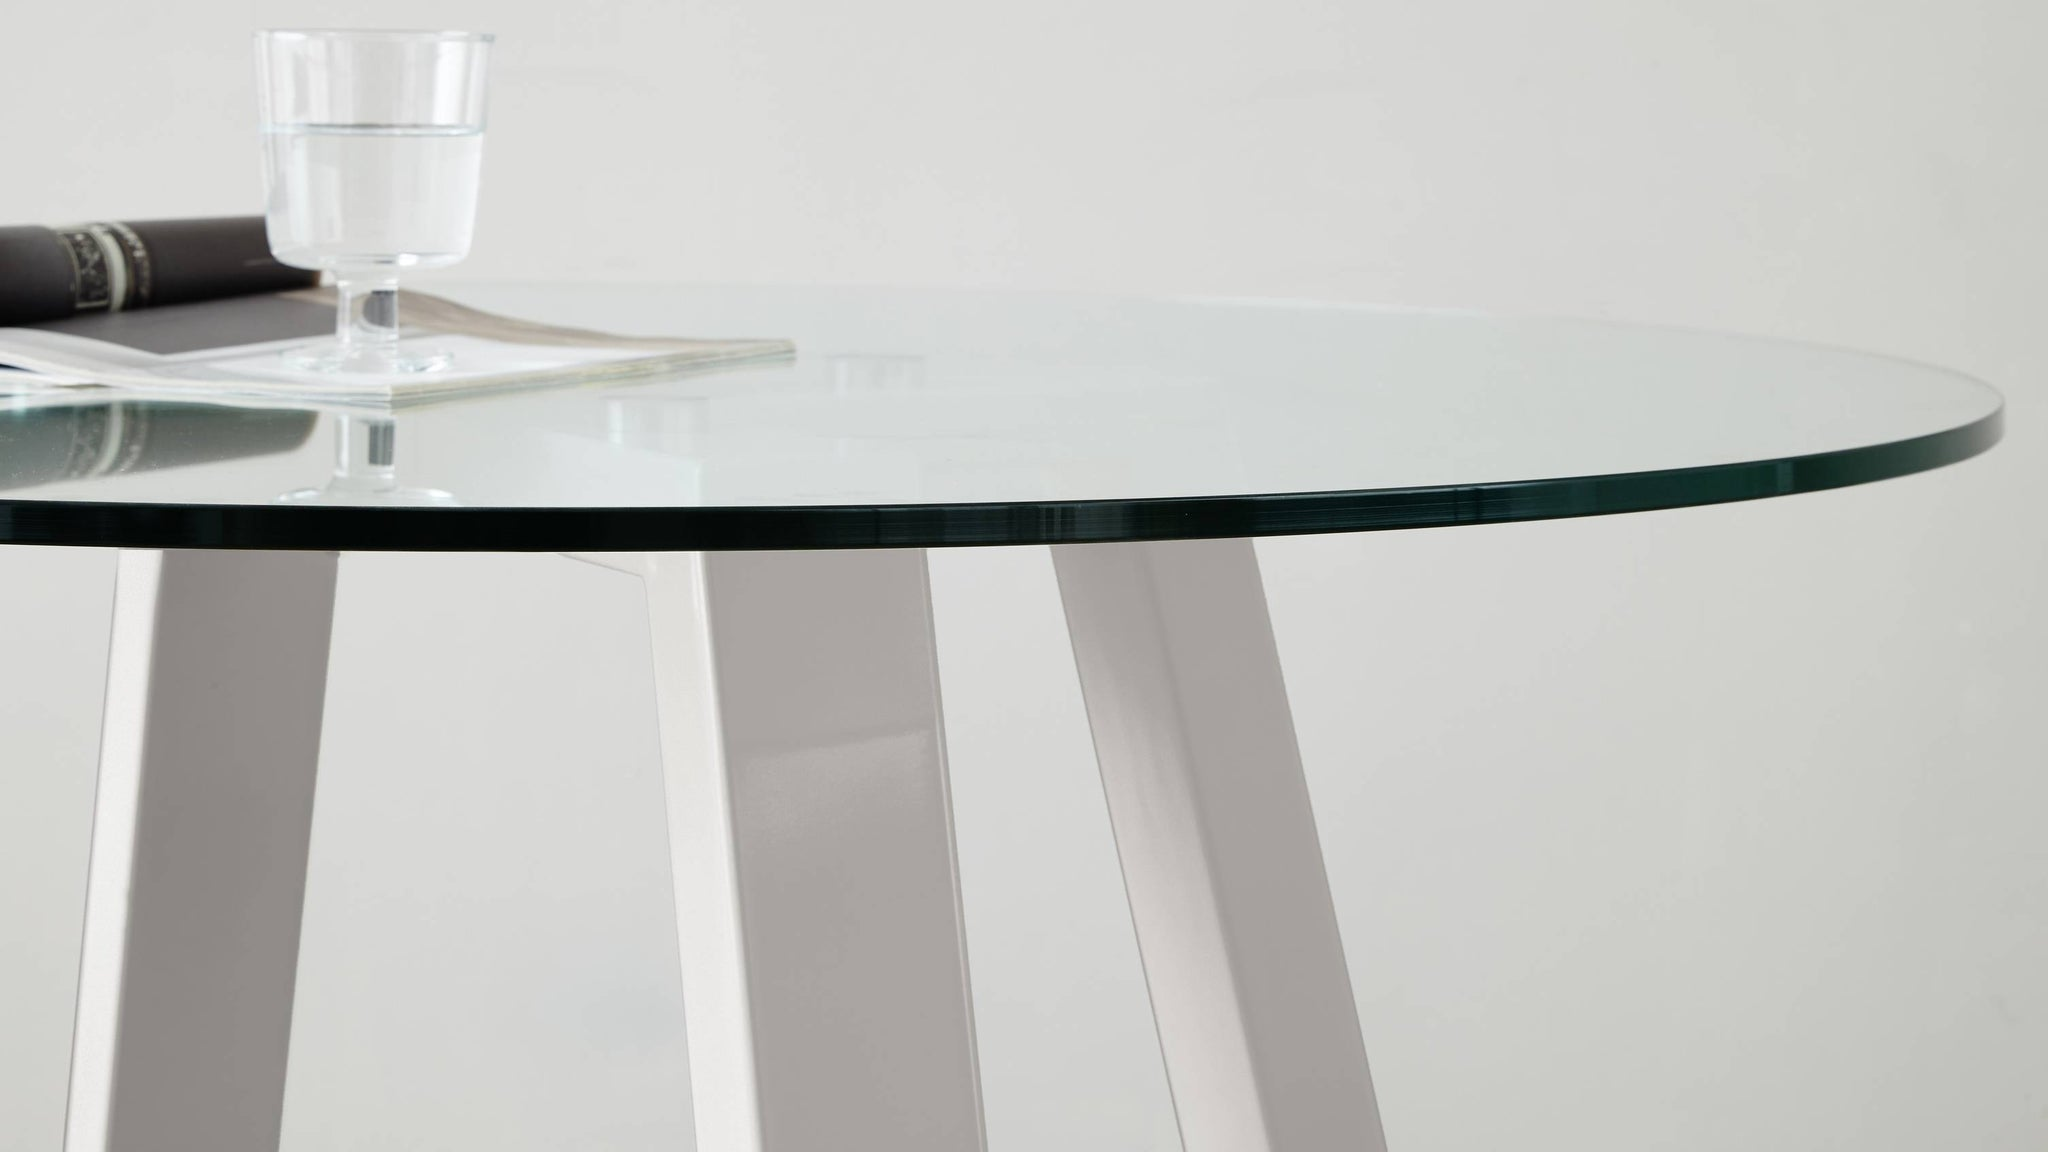 Study glass table